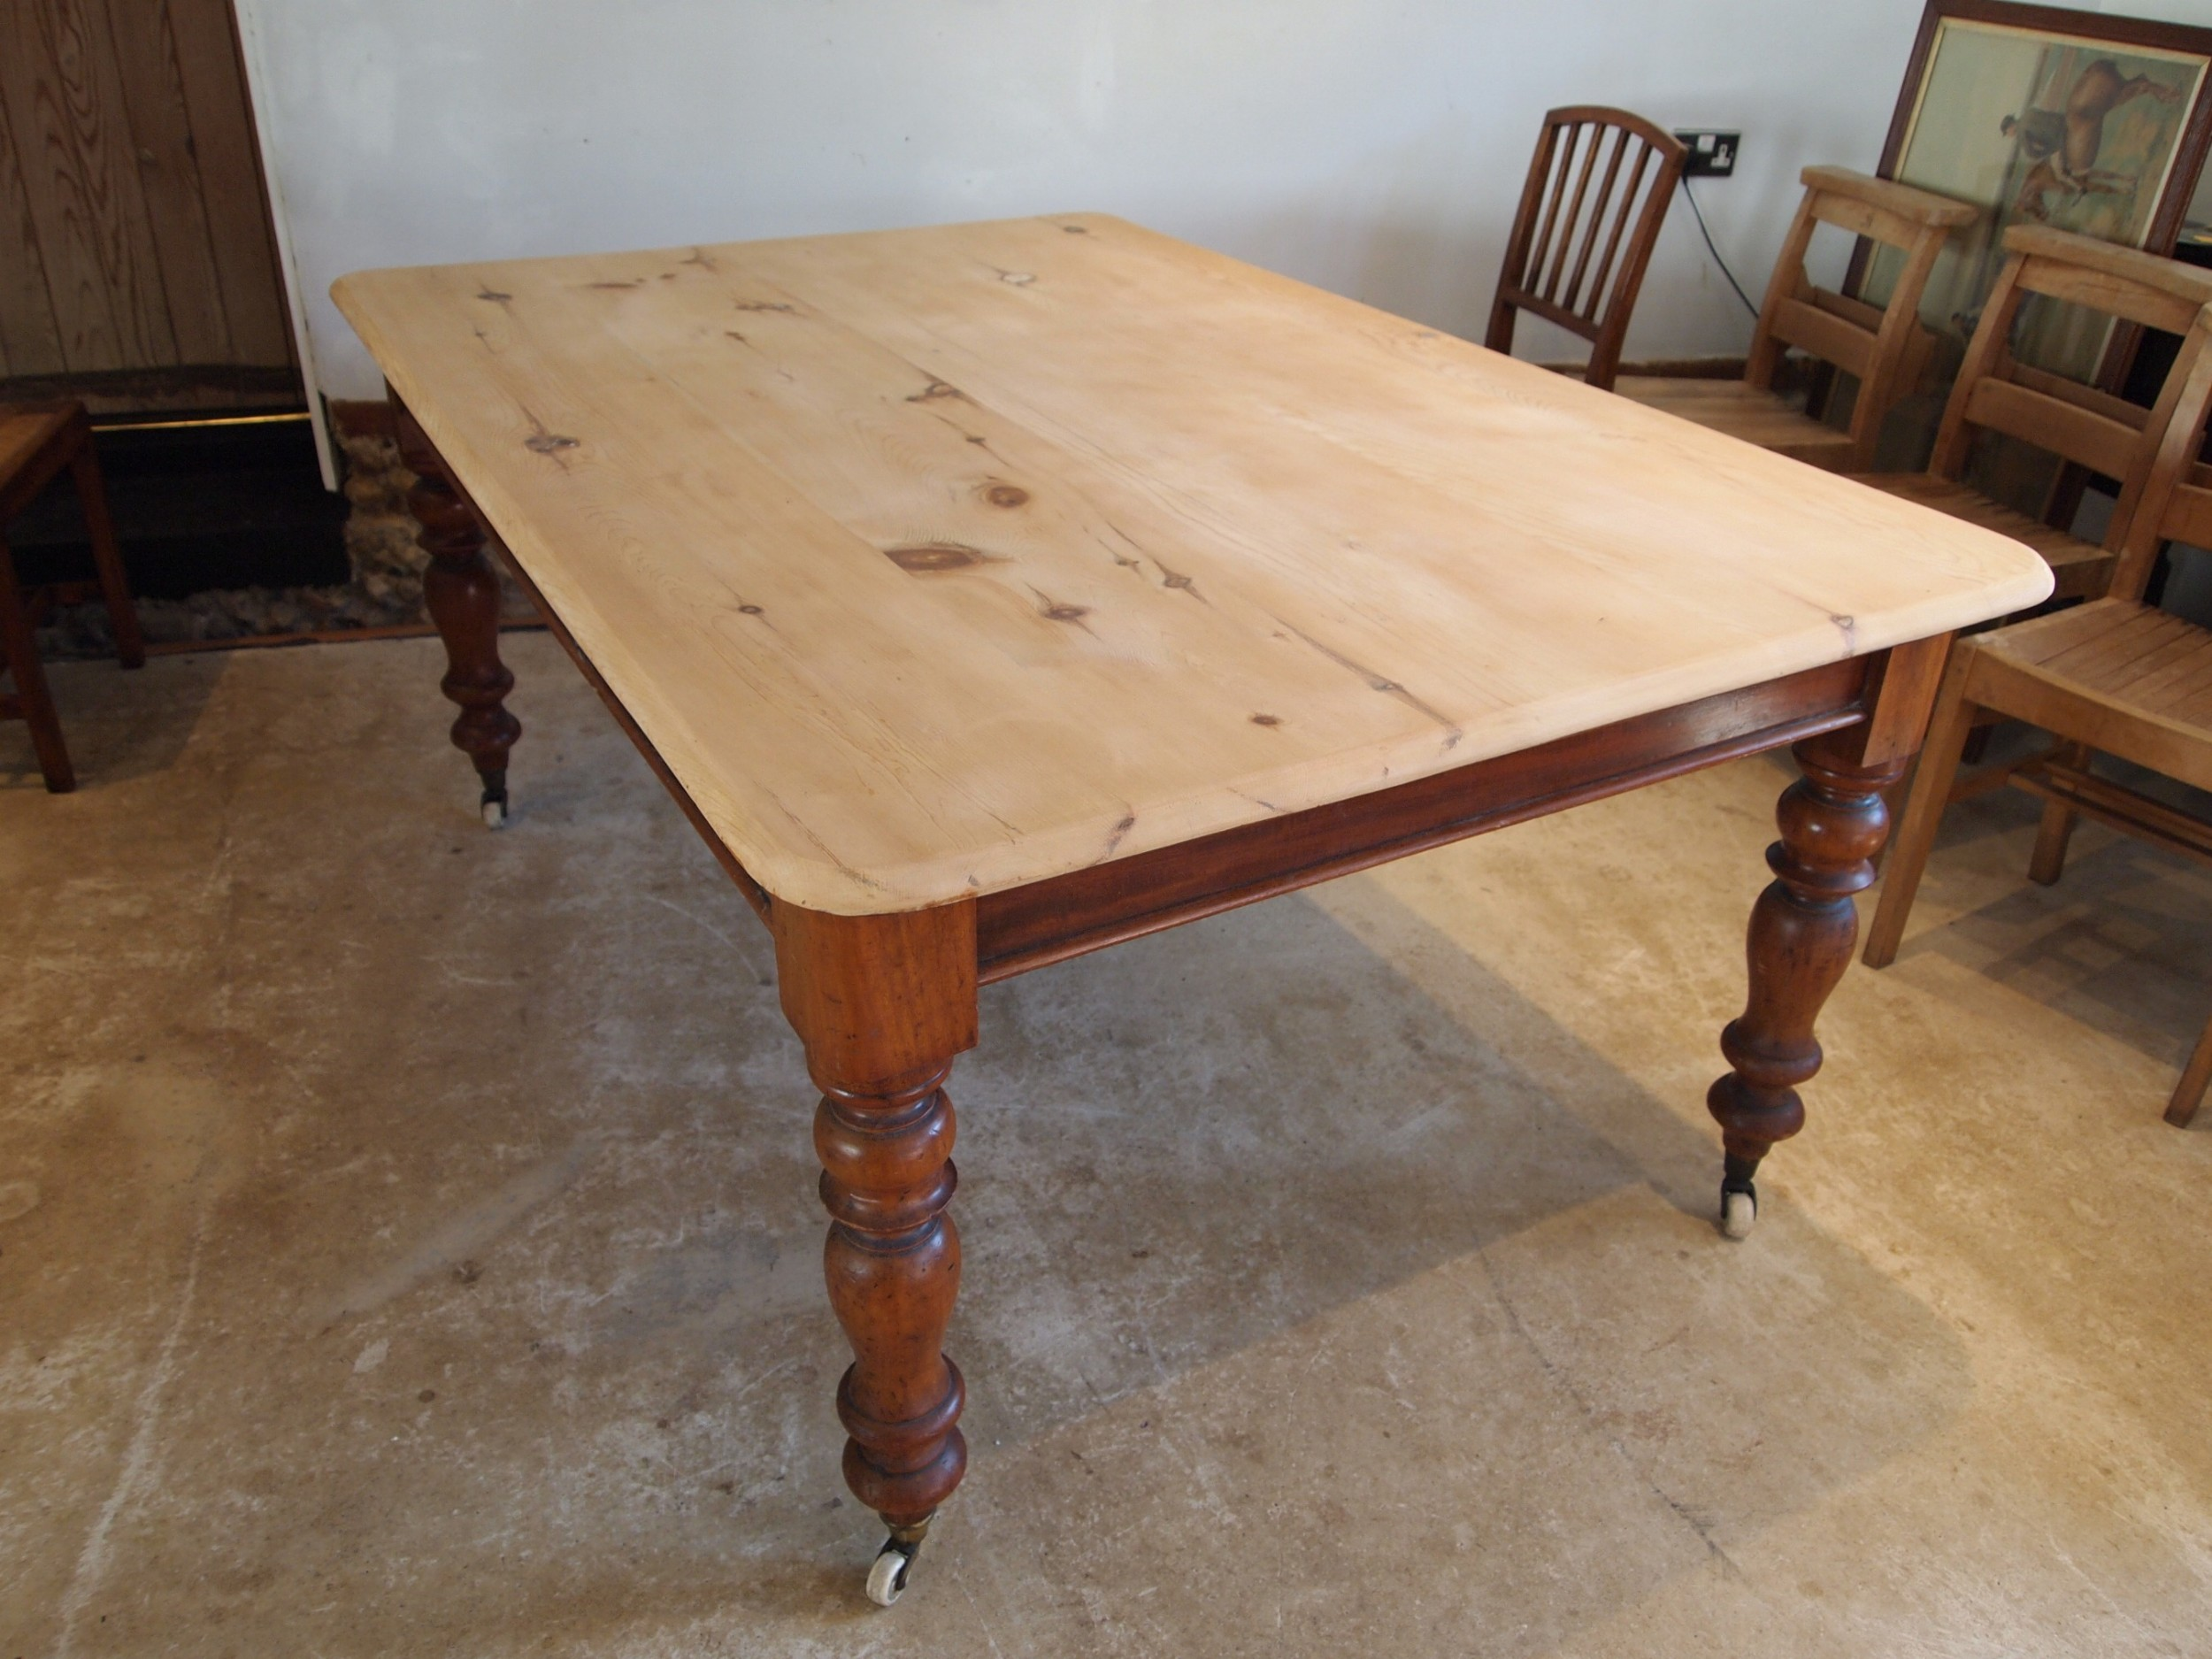 table victorian refectory farmhouse scrub top dining table c1880